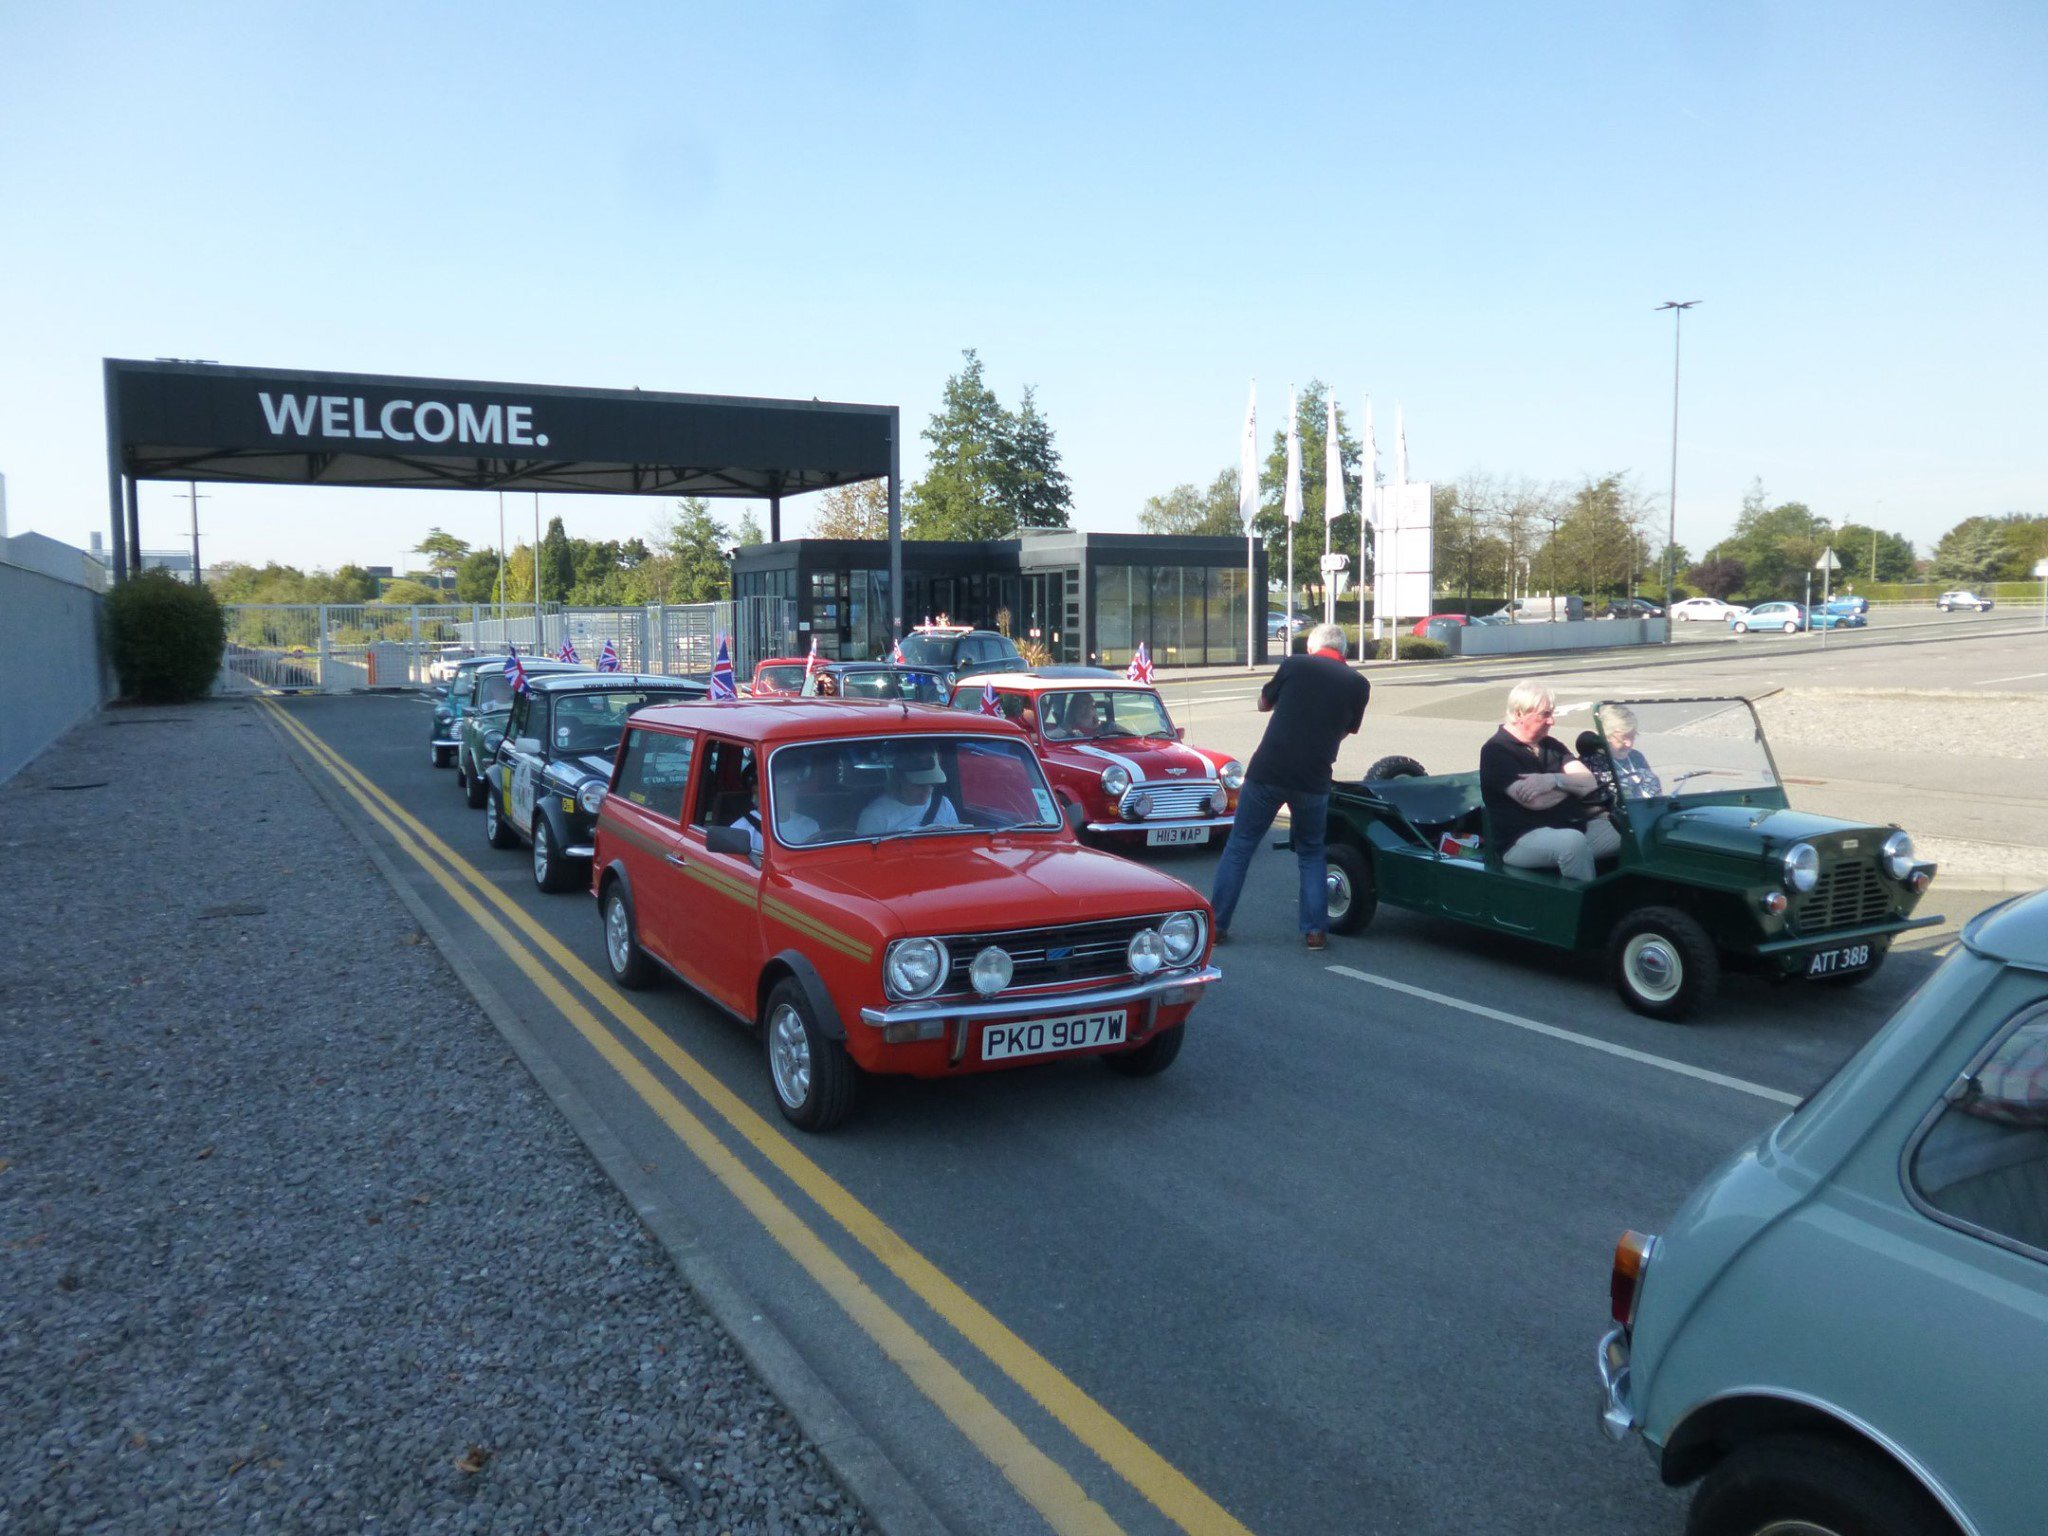 The Cavalcade lined up outside of the mini factory Oxford